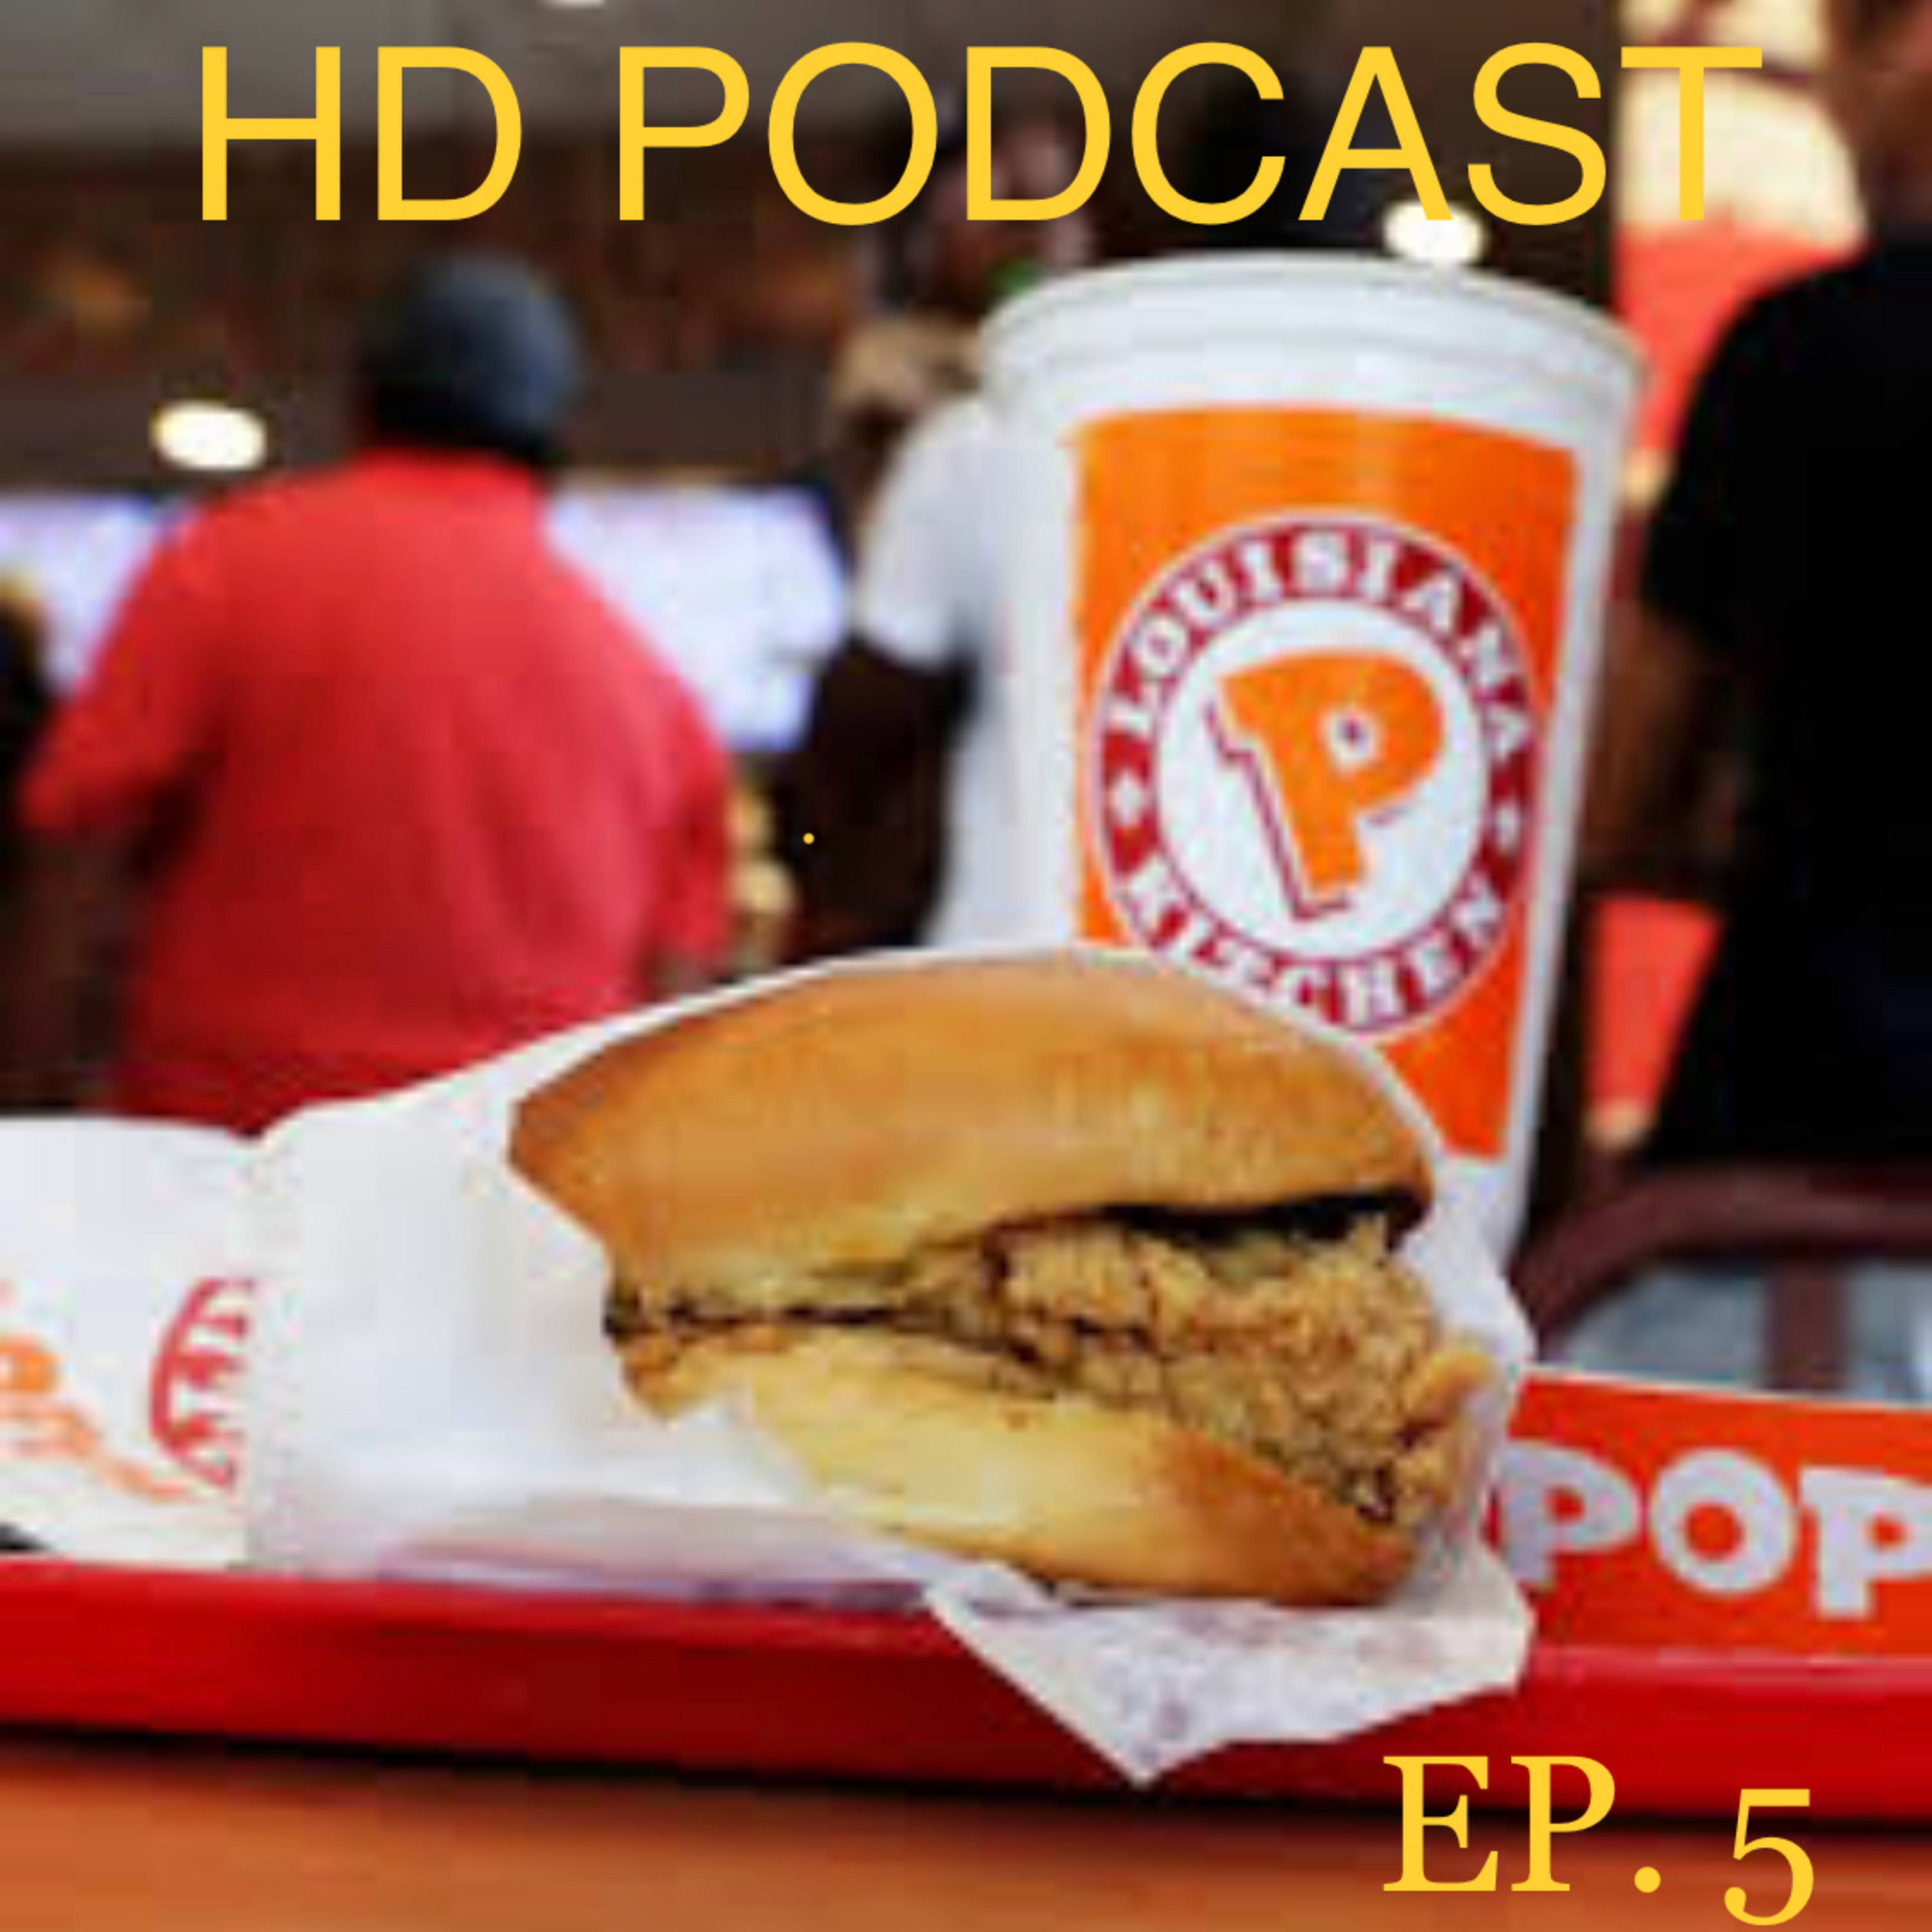 CHICKEN SANDWICH WITH WATER ON FIRE EP. 5.